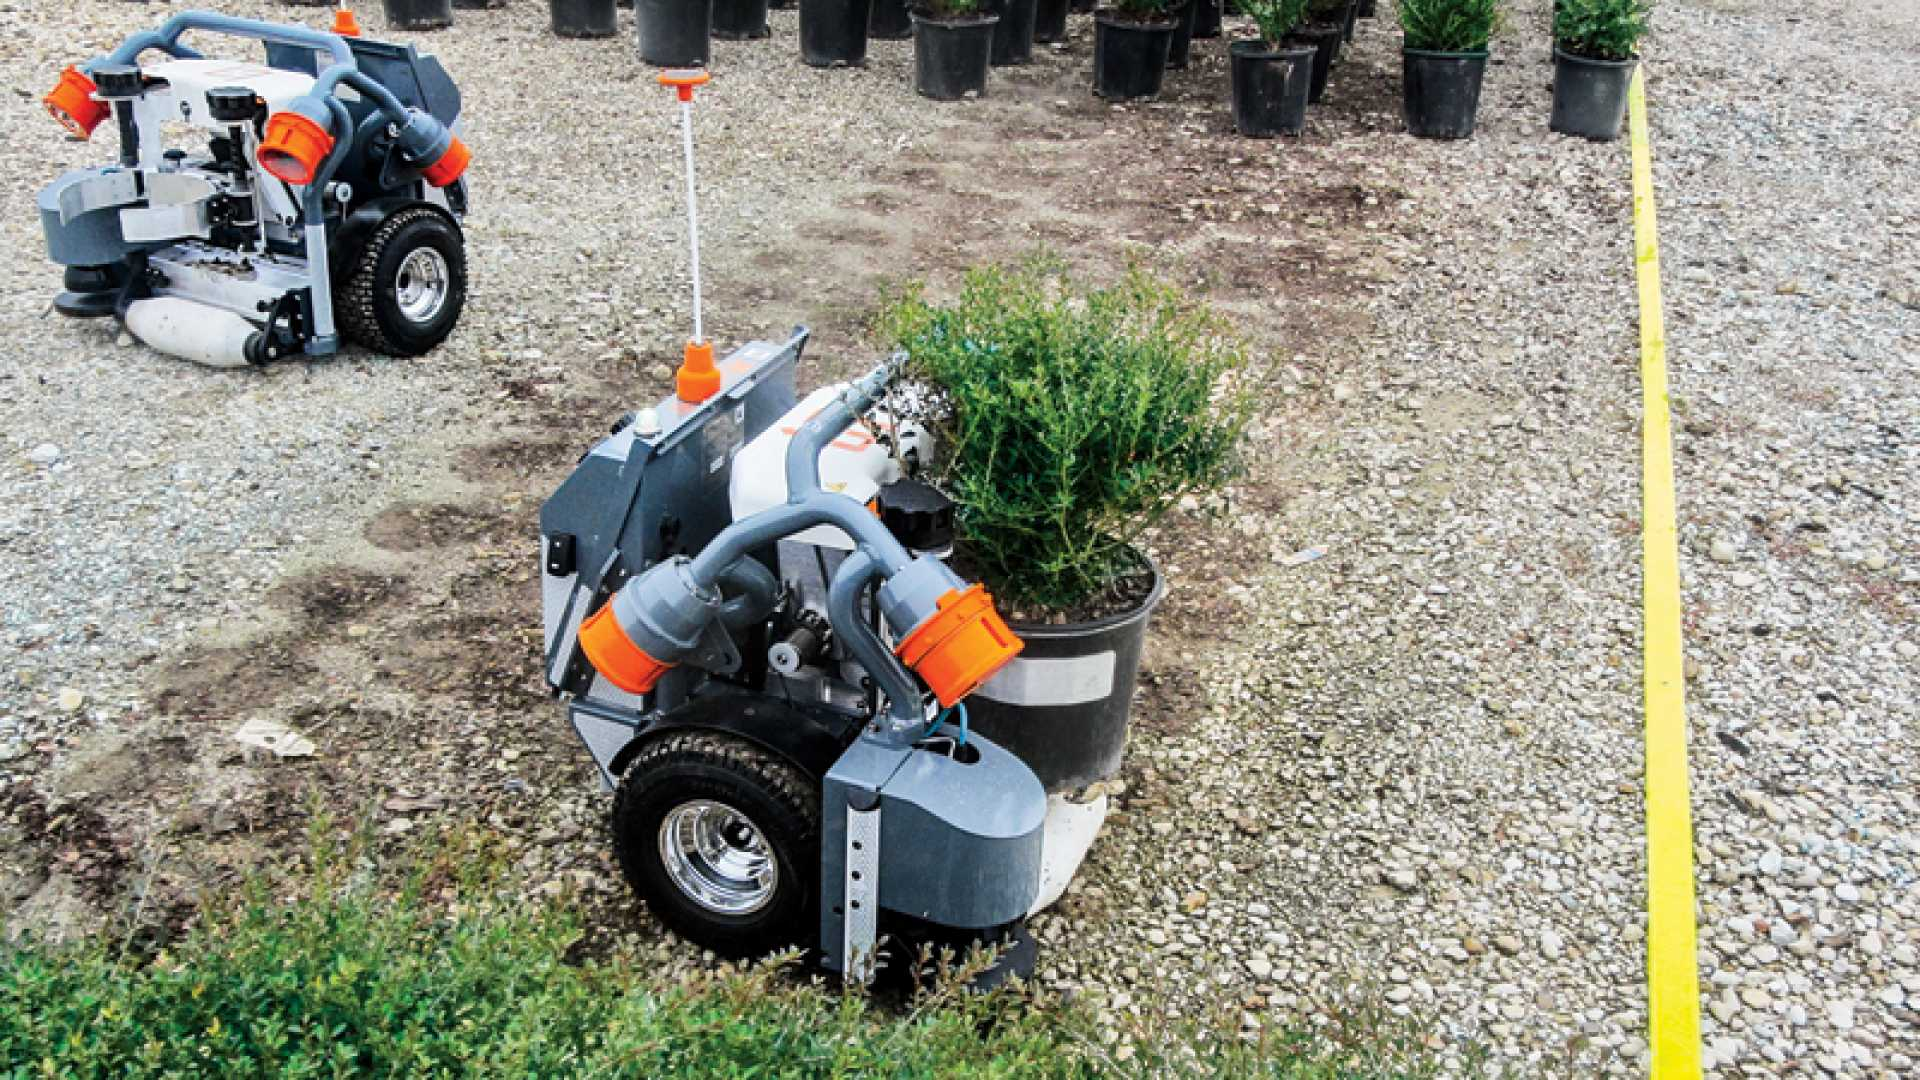 This Robot Might Take the Dirty Work Out of Farming